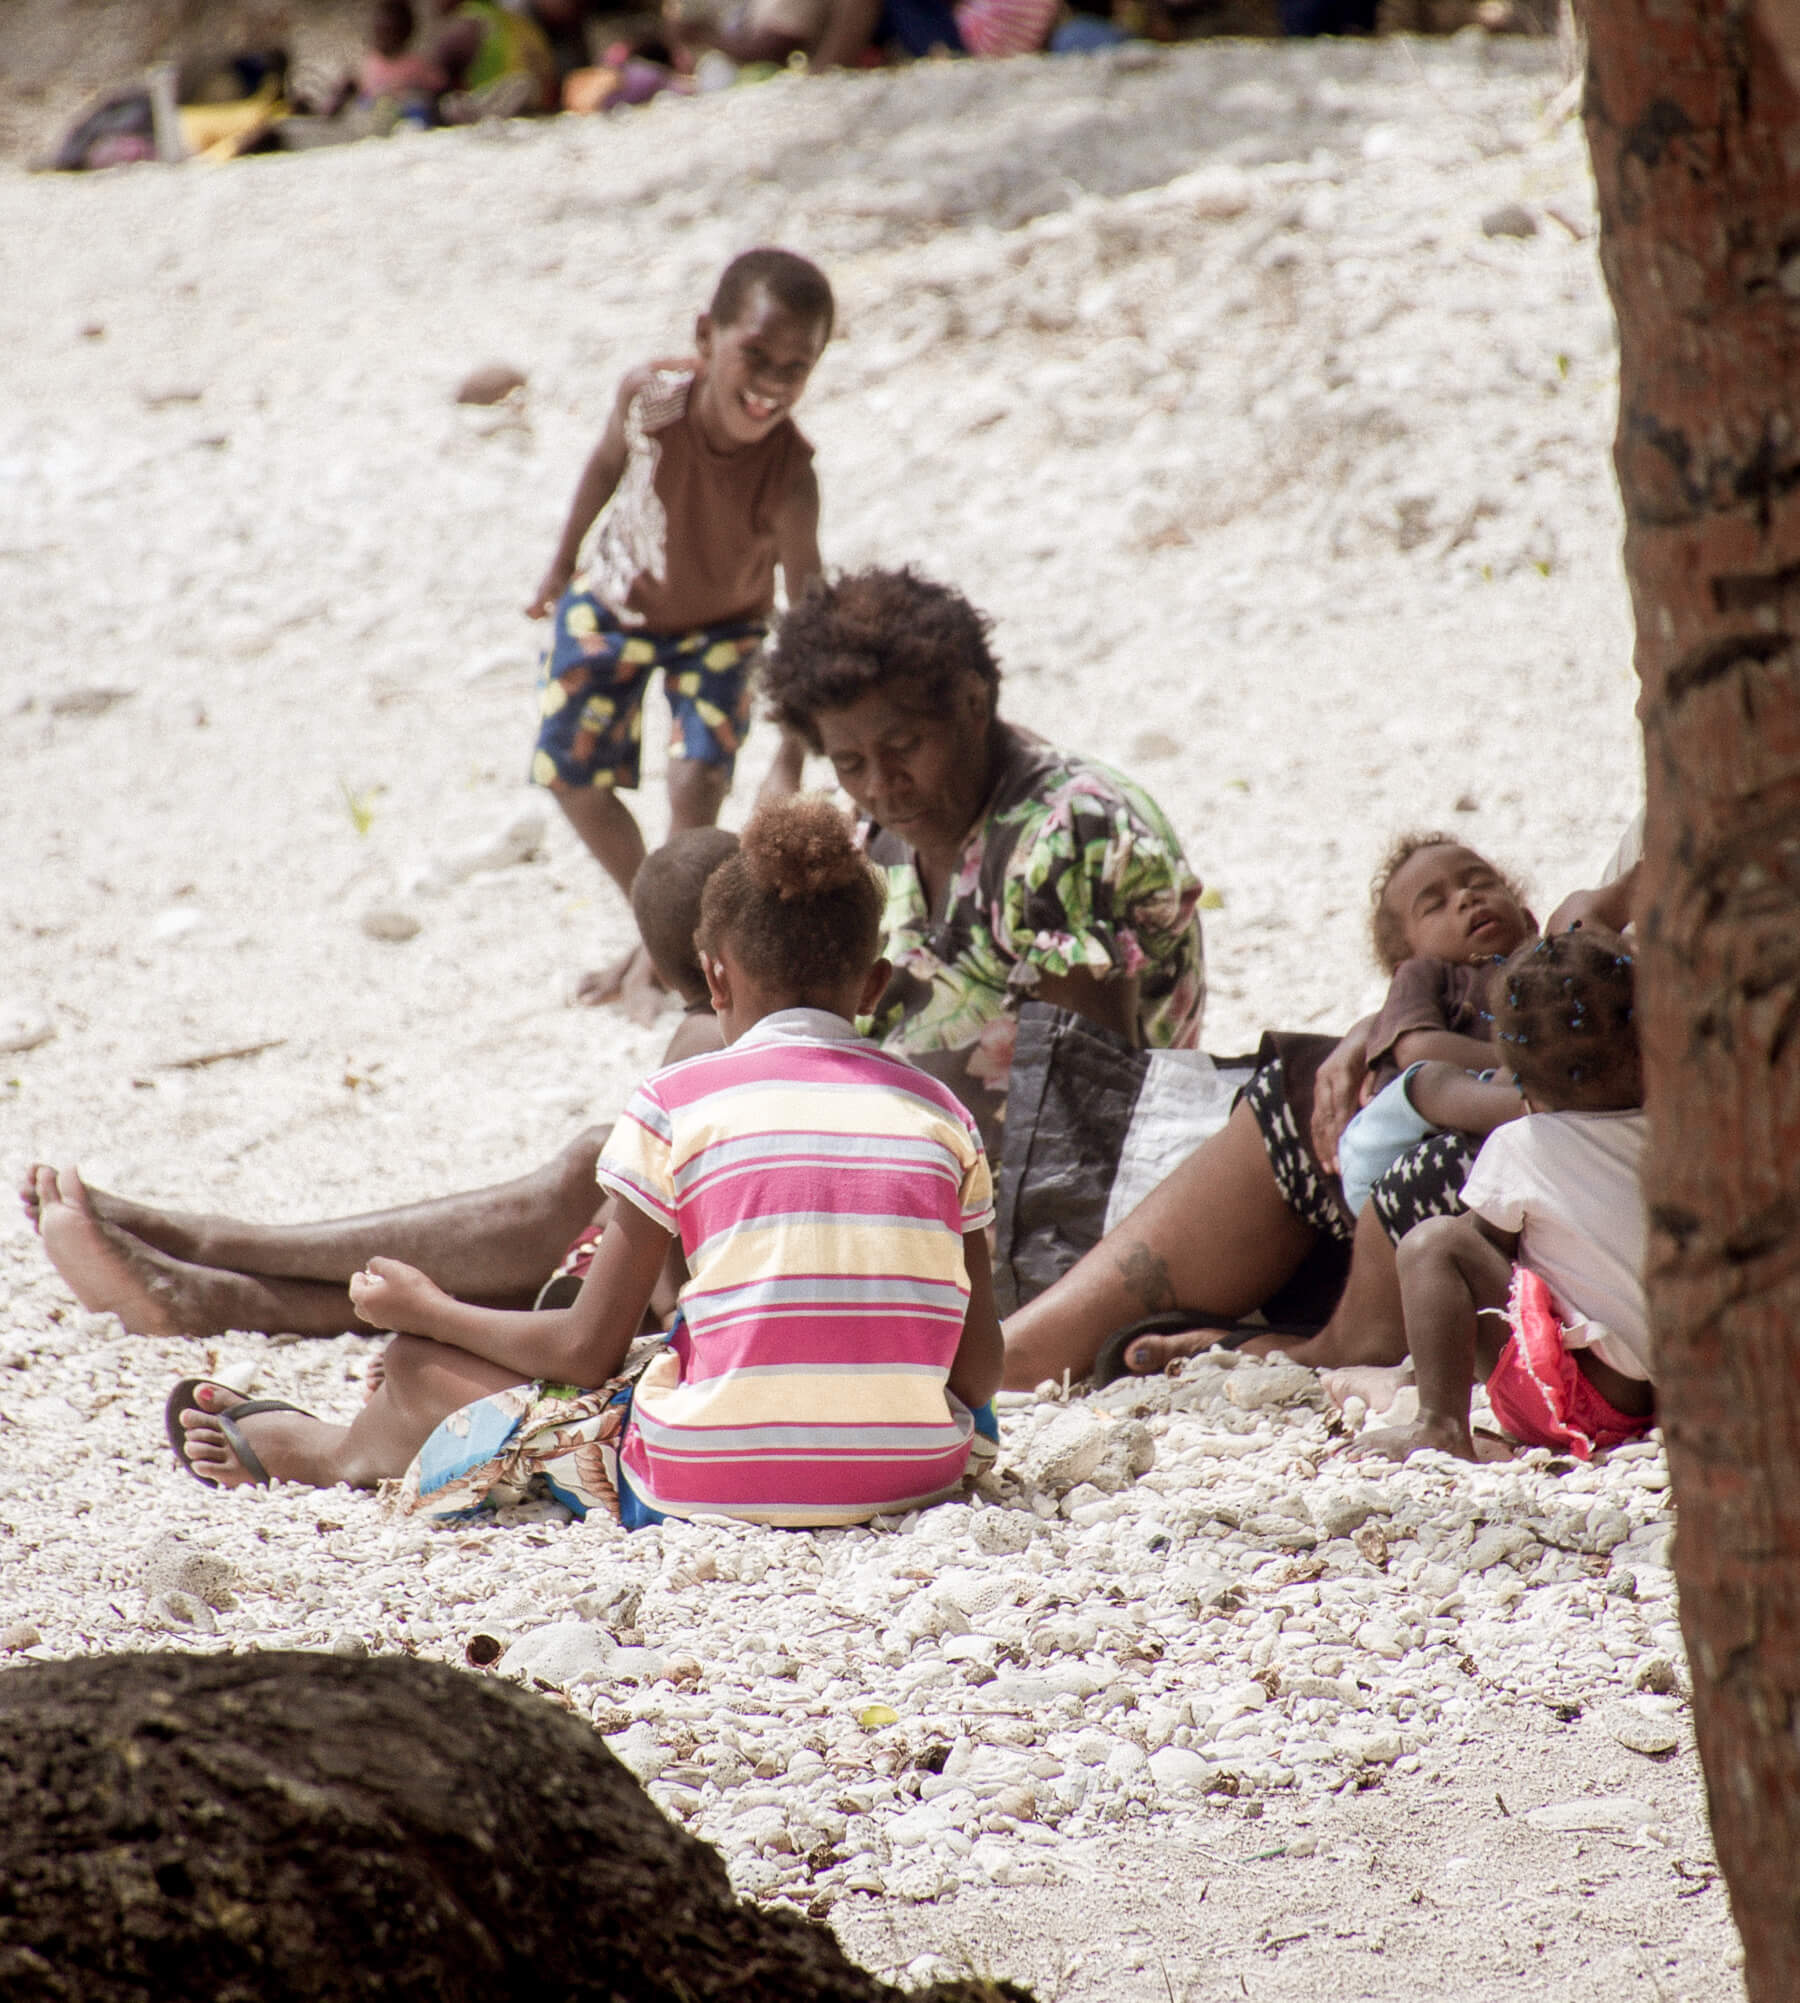 A family of local Vanuatu people sitting on a beach - a mother and her sleeping baby and 3 happy children